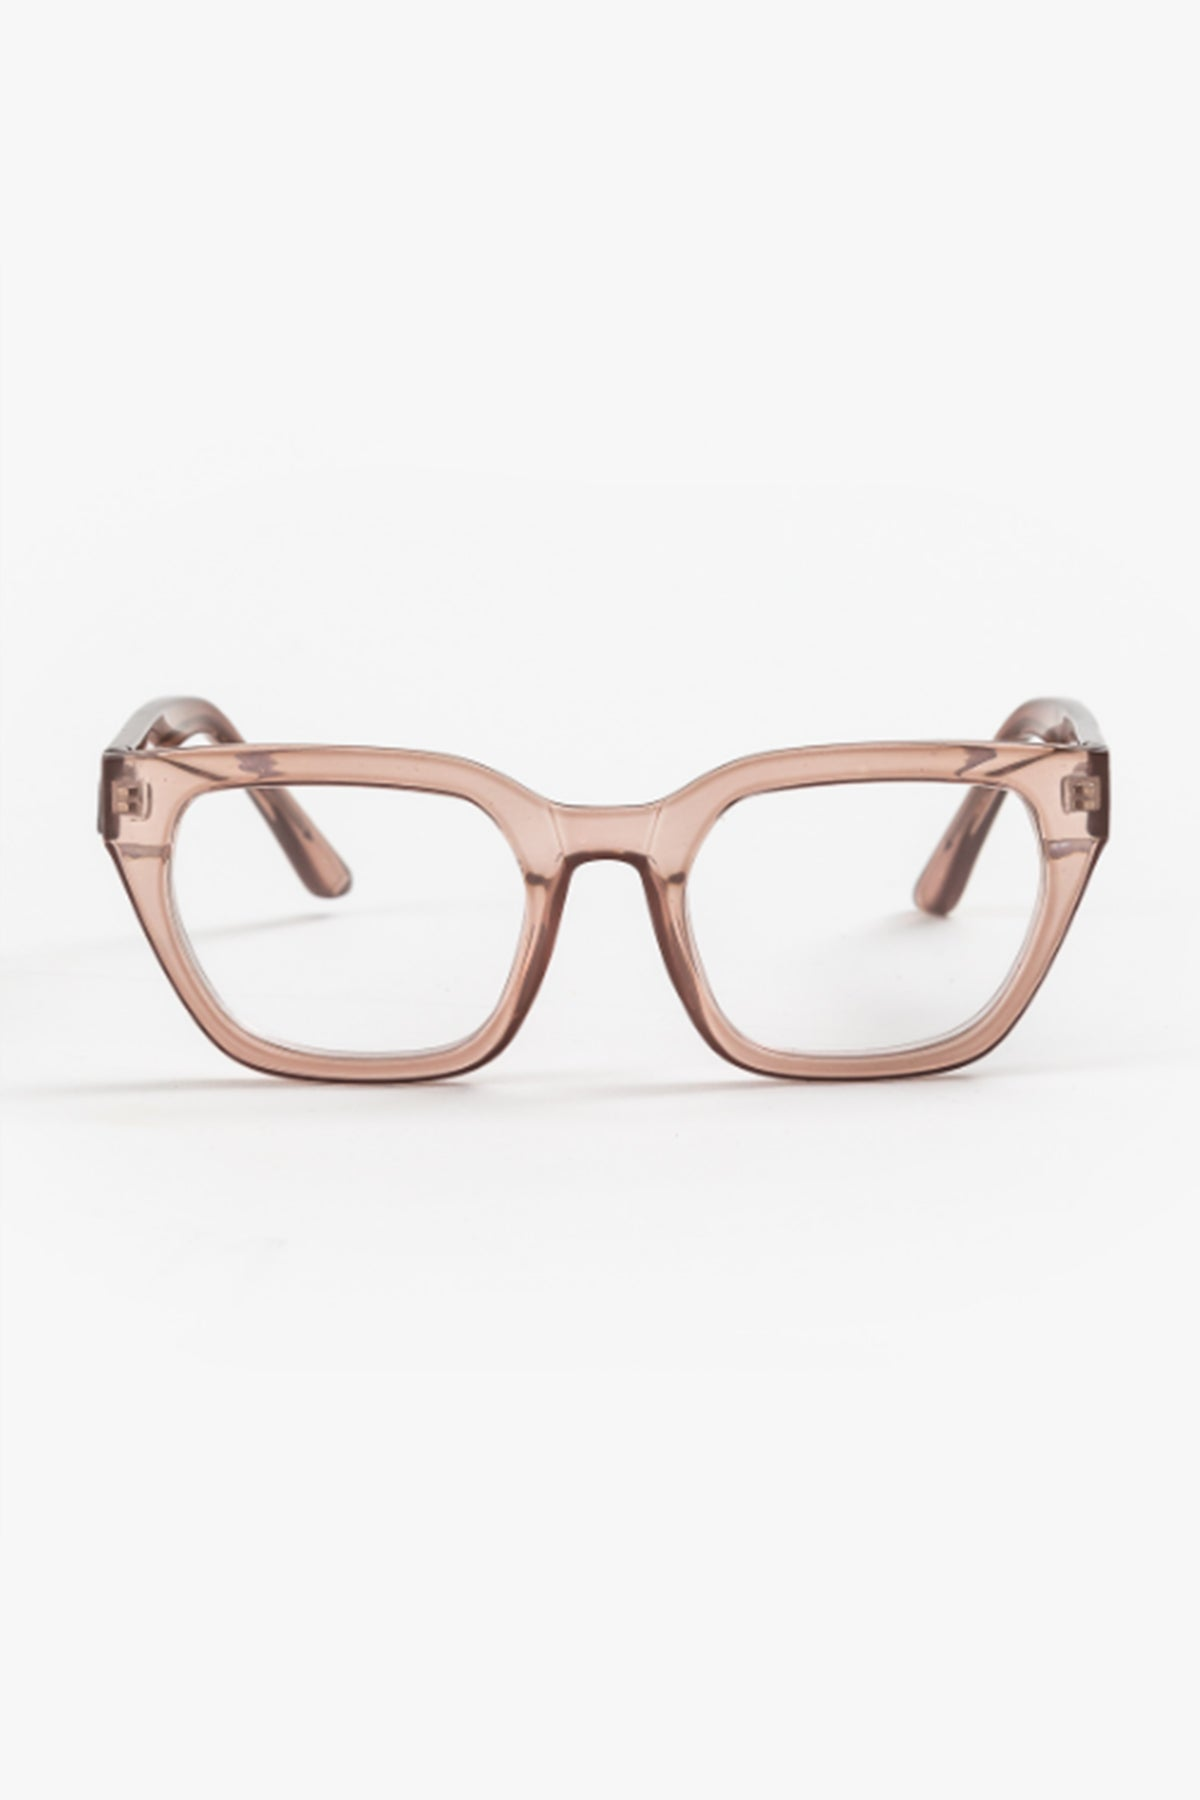 Ava Rose Reading Glasses - Blue Bungalow